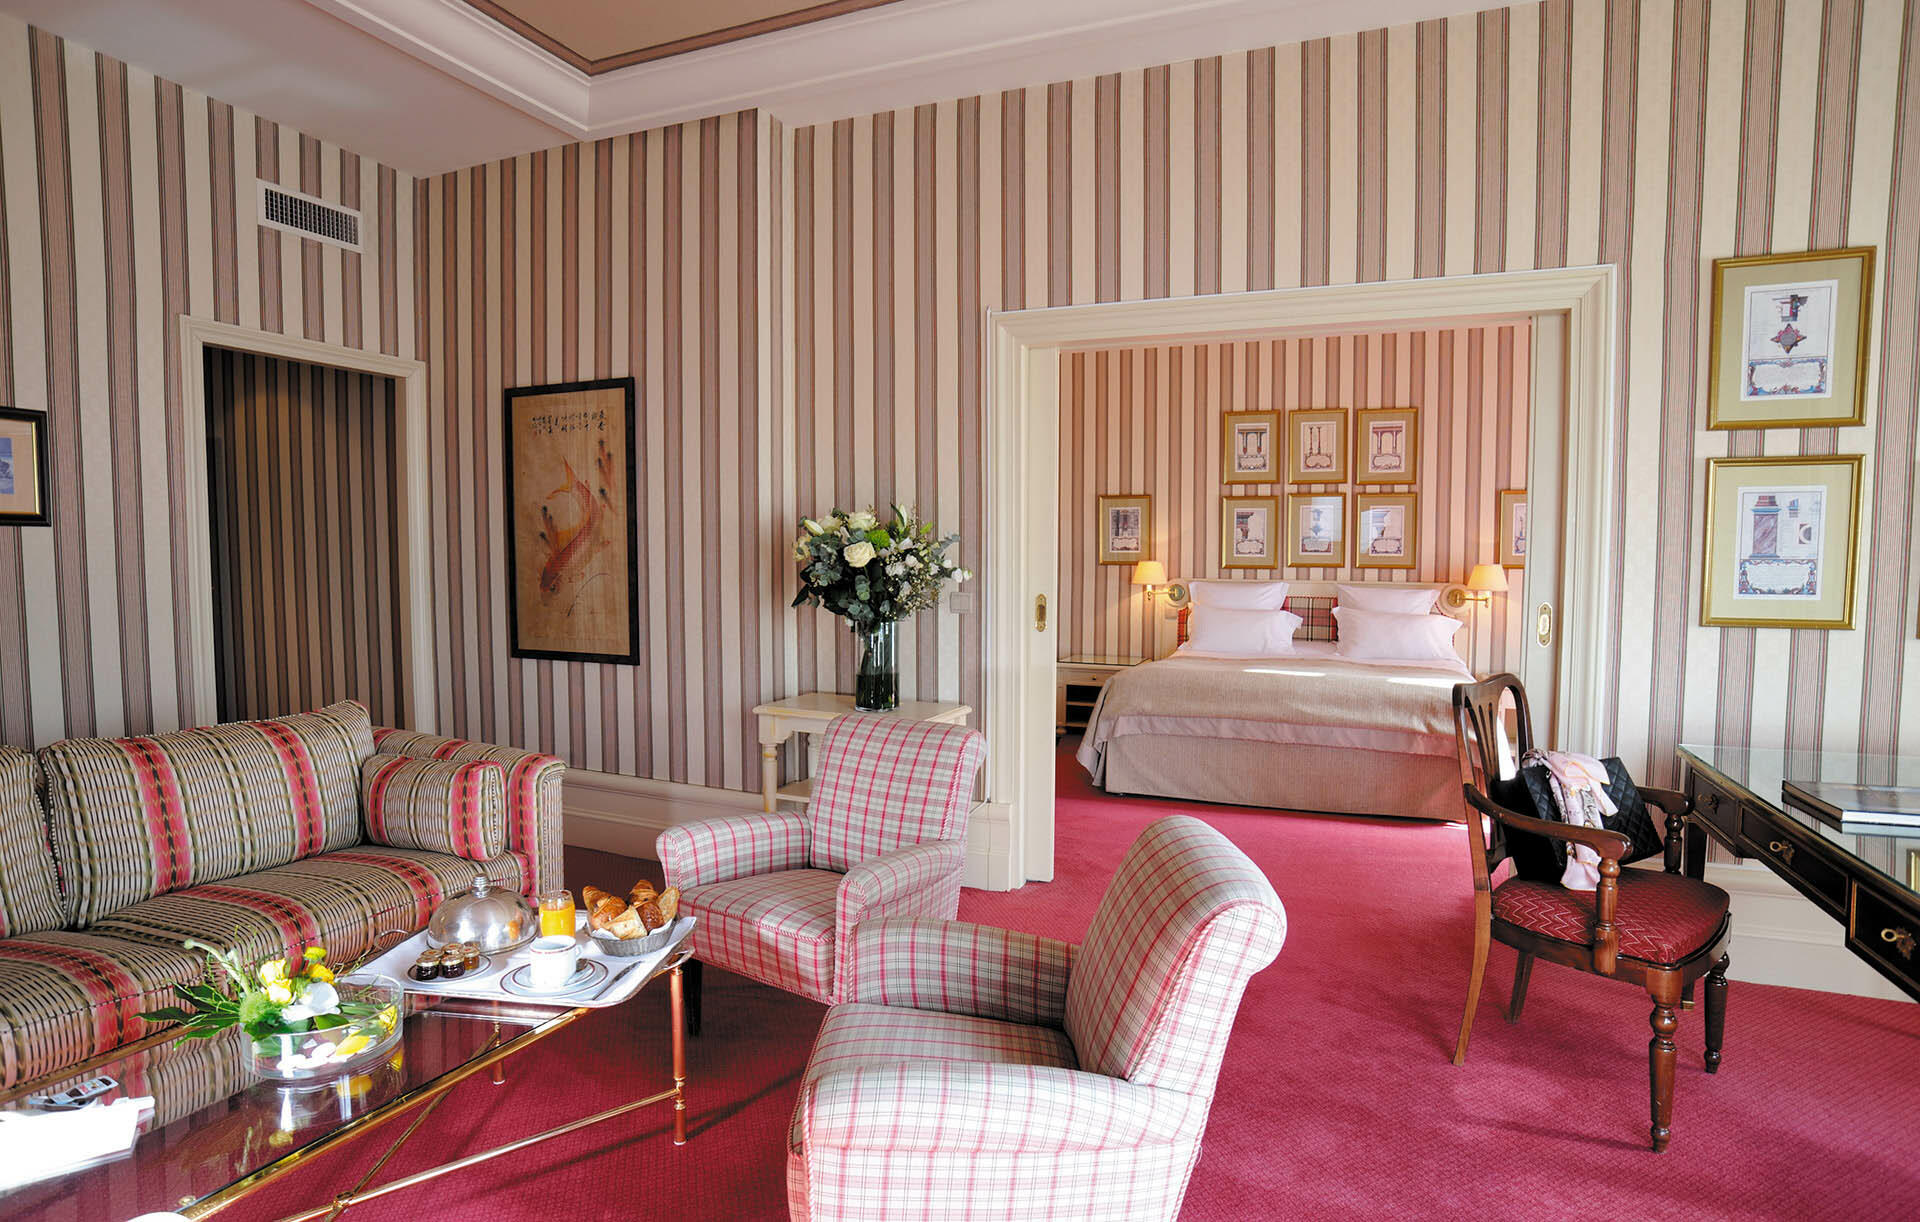 Presidential Suite at Domaine de Divonne Hotel